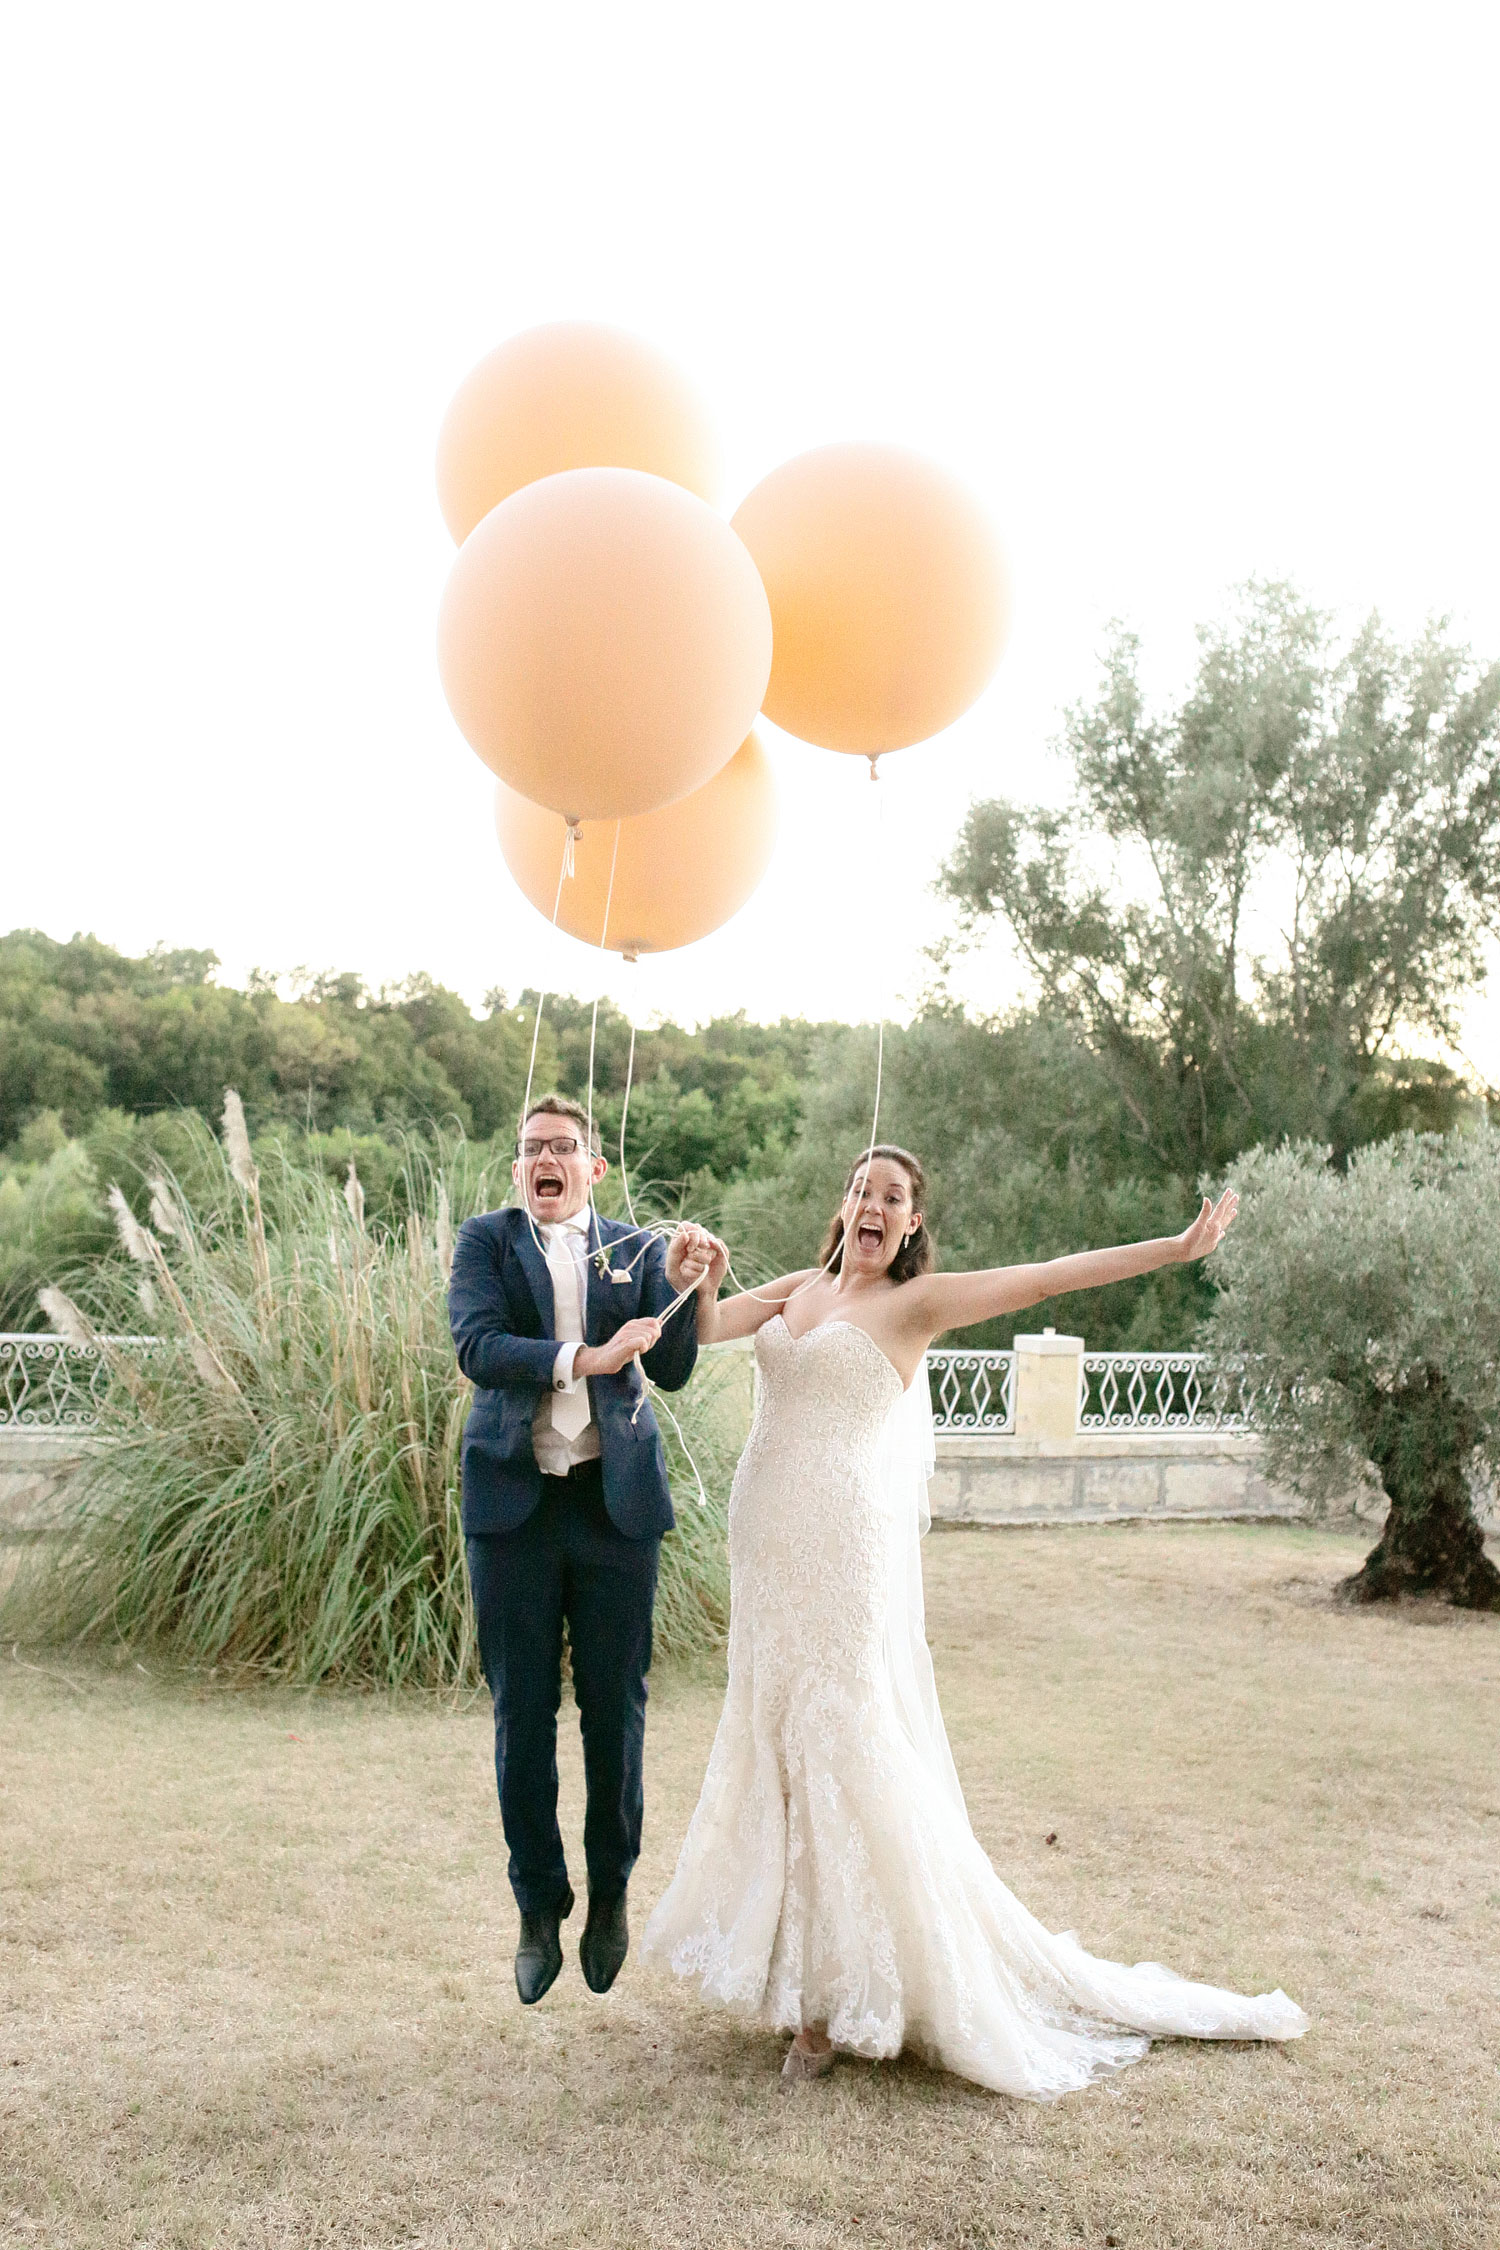 relaxed wedding photography Bordeaux France